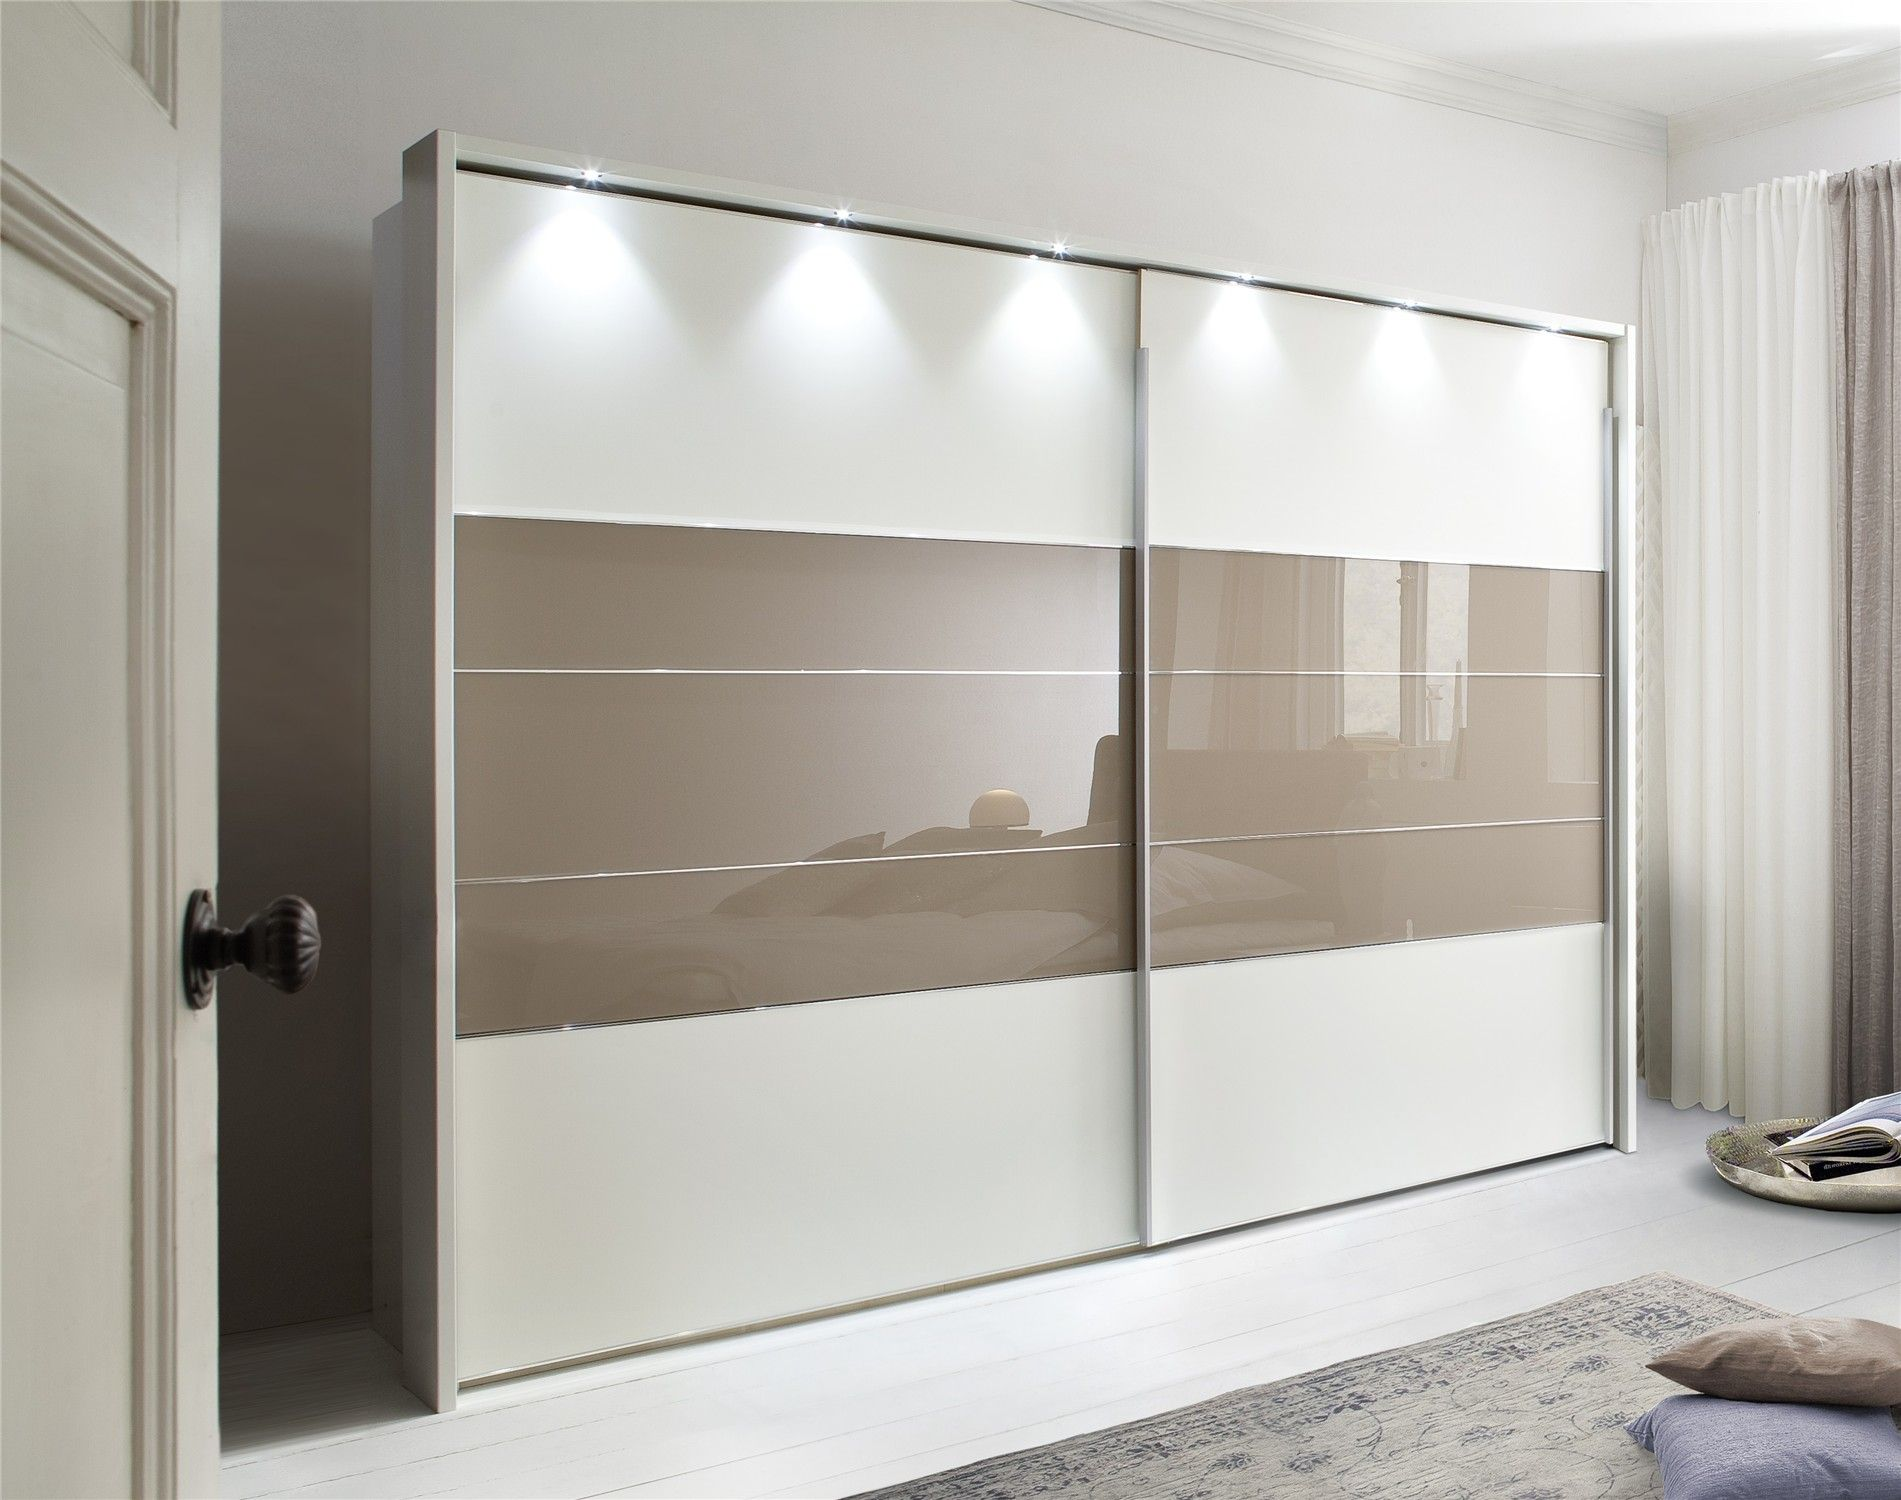 Sliding Door Wardrobes Wardrobes With Sliding Doors Free Standing Wardrobes With Sli Sliding Door Wardrobe Designs Wardrobe Door Designs Sliding Wardrobe Doors